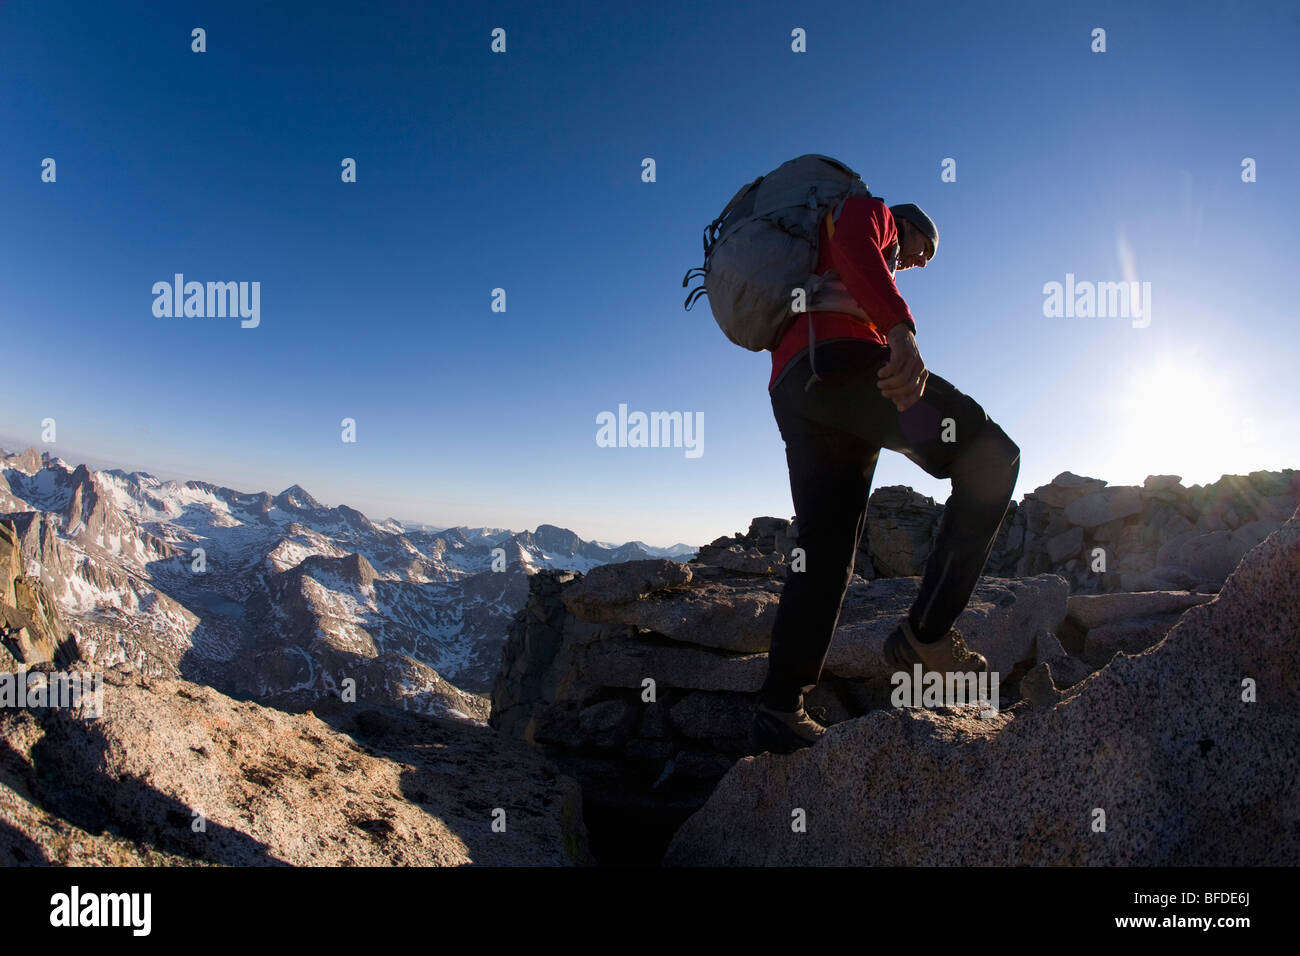 Male hiker on the Evolution Traverse, Kings Canyon National Park, California. - Stock Image